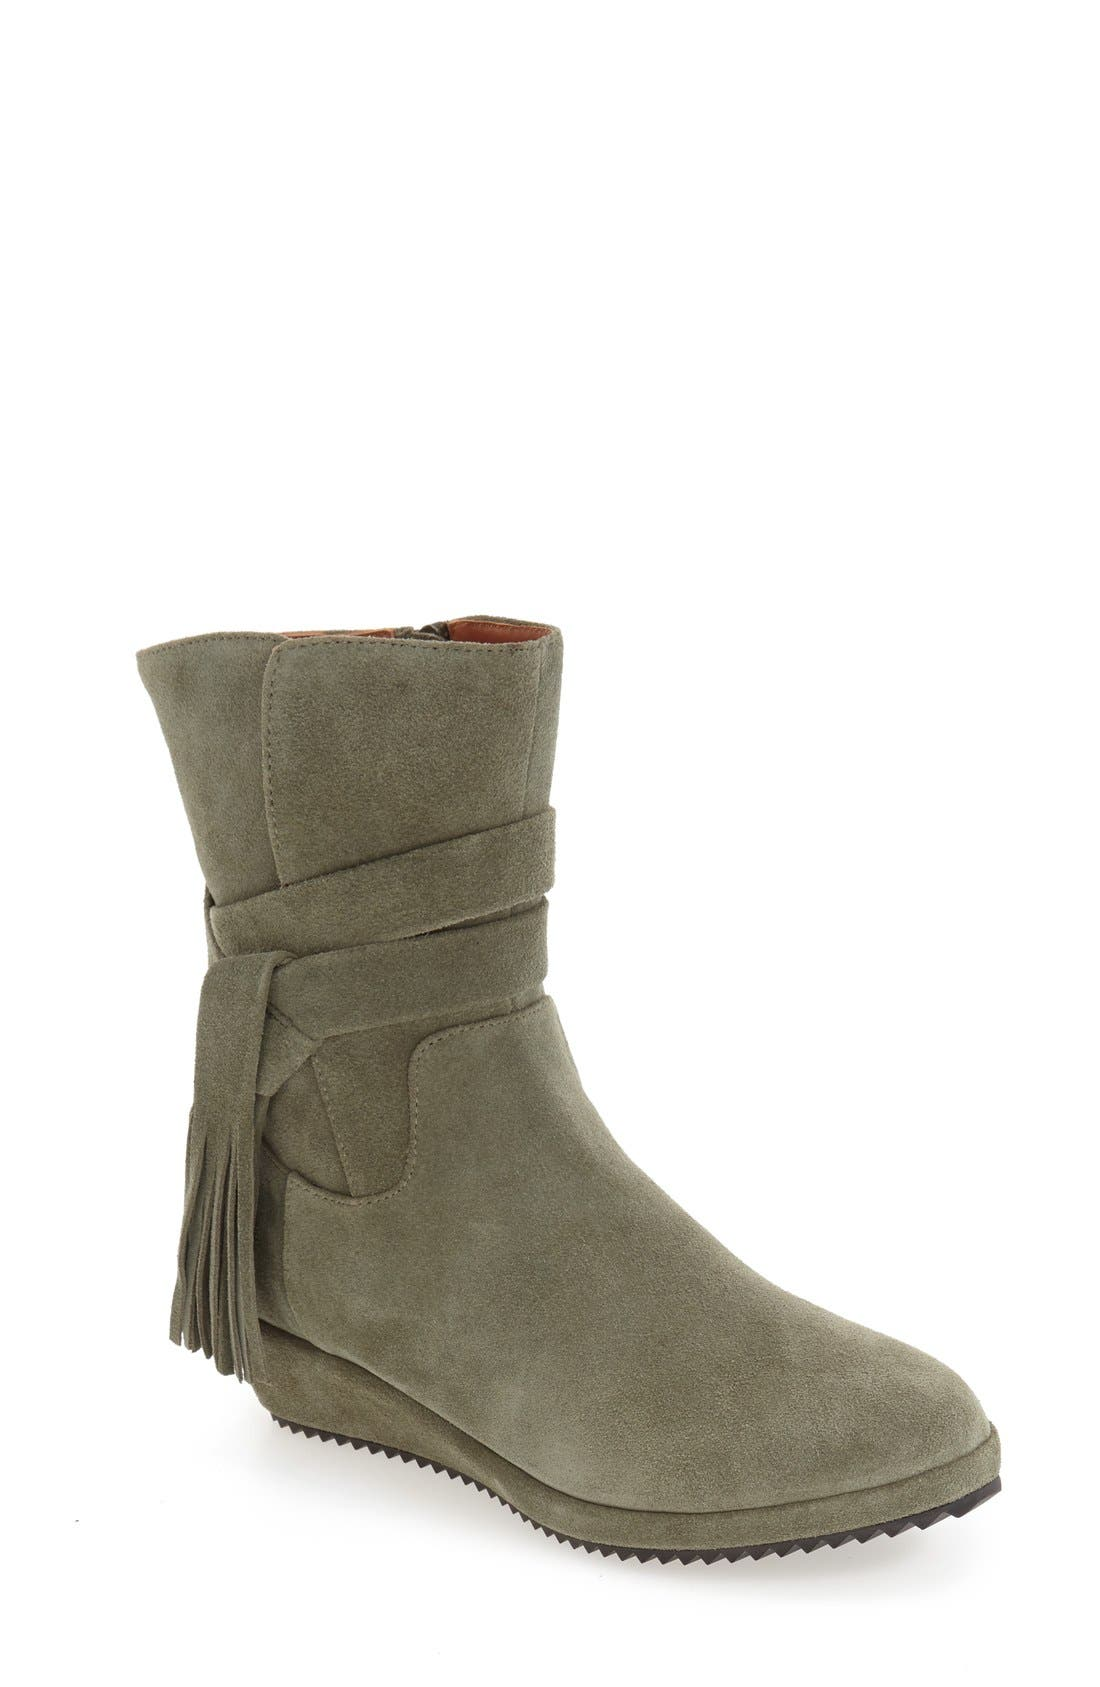 'Bernyce' Boot,                             Main thumbnail 1, color,                             Olive Suede Leather